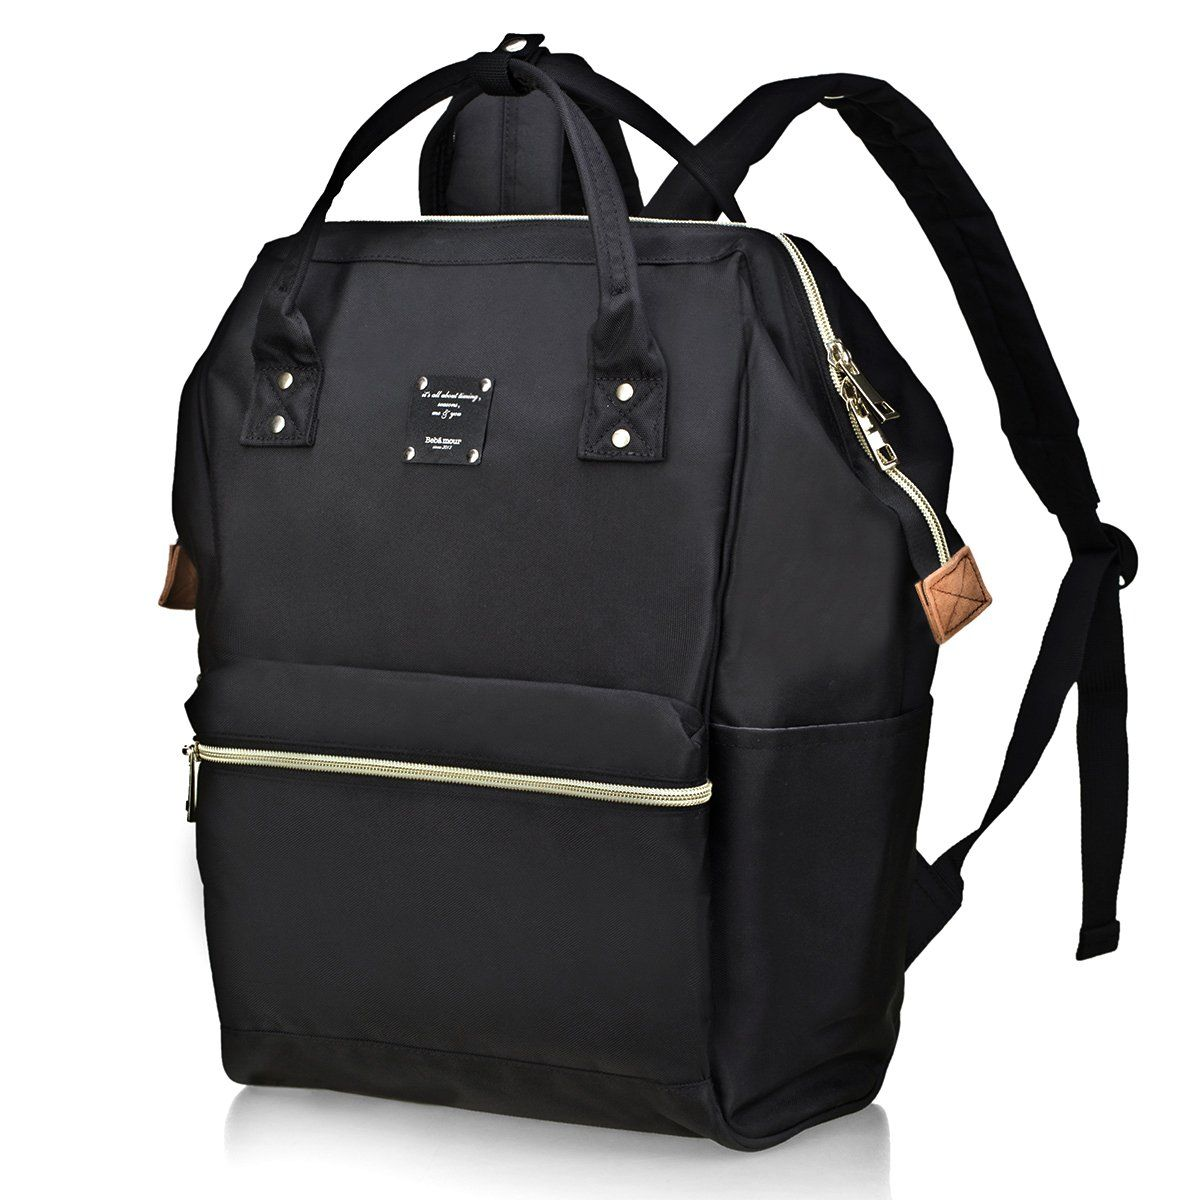 0828fa01ebdc Bebamour Casual College Backpack Lightweight Travel Backpack for Women Men  -Black. Bag dimensions  L